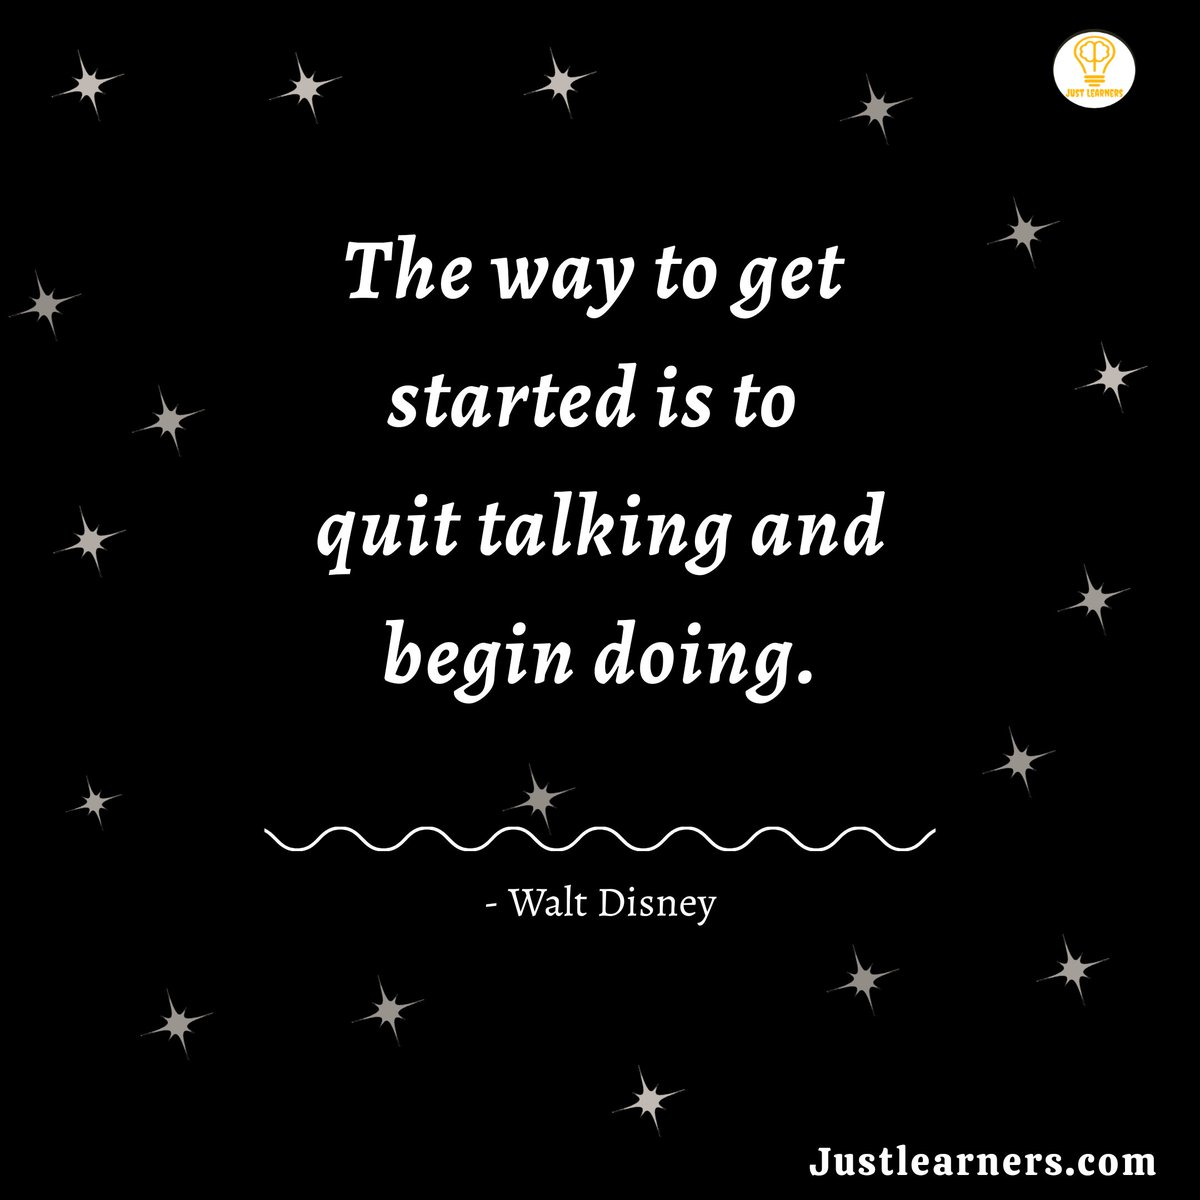 Quit talking and begin doing.   Follow @JustLearners  #thoughtoftheday #mondaythoughts #MondayMotivation #MotivationalQuotes #InspirationalQuotes #morningvibes #quotestoliveby  #gratitude #Truth #thoughts #findyourwhy #quoteoftheday #mindfulness #waltdisney #justlearnerspic.twitter.com/qSKo9bcgED